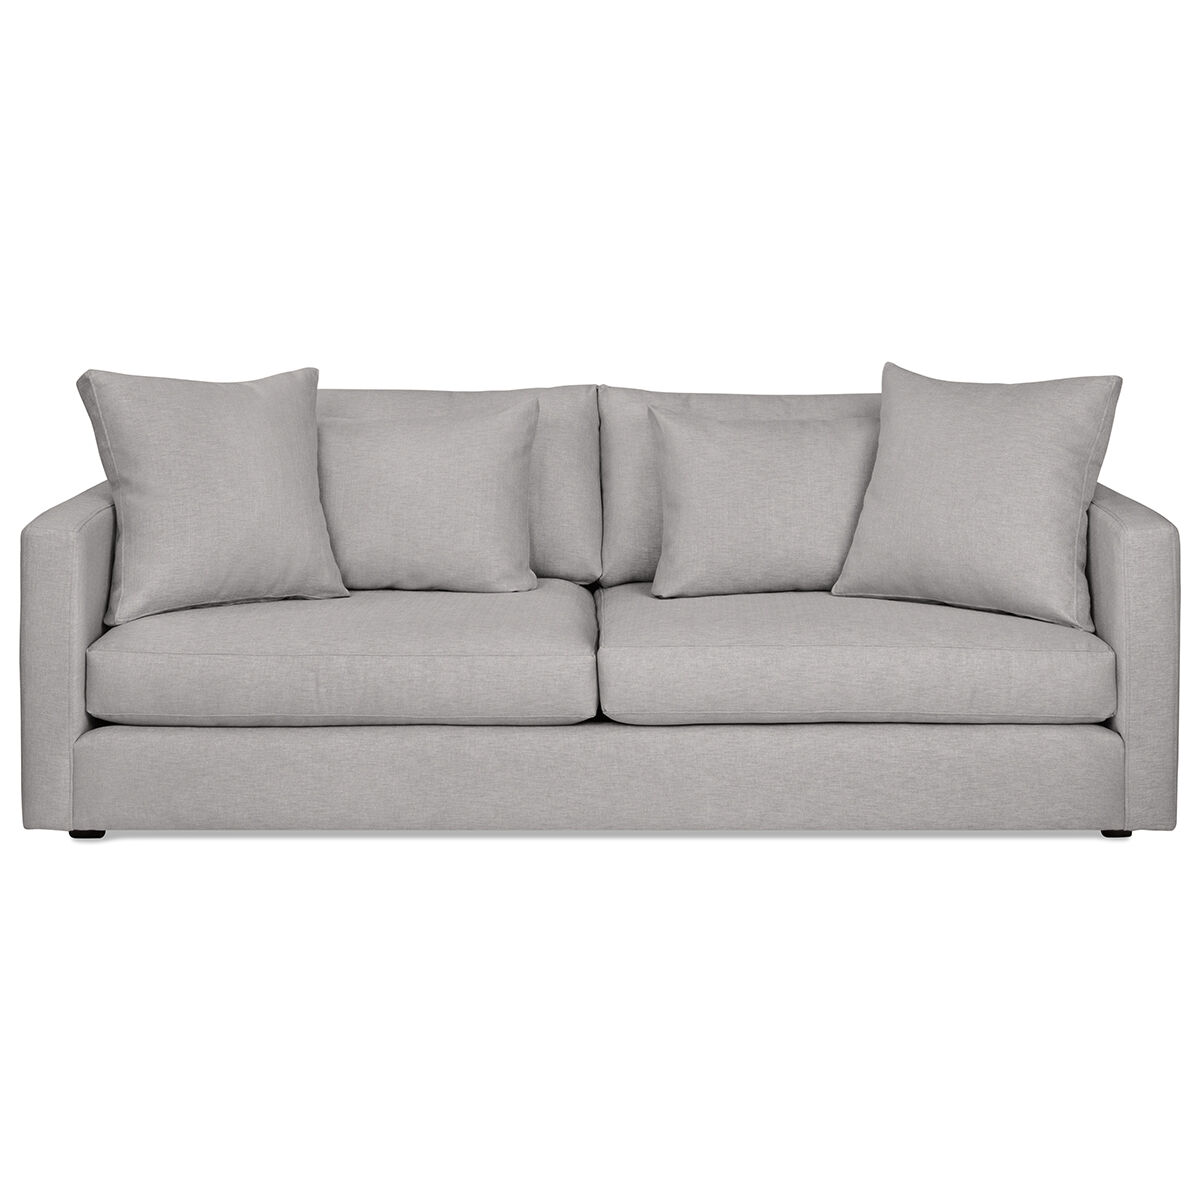 custom sofa design online american leather bed prices guide to furniture and sofas sectionals berg